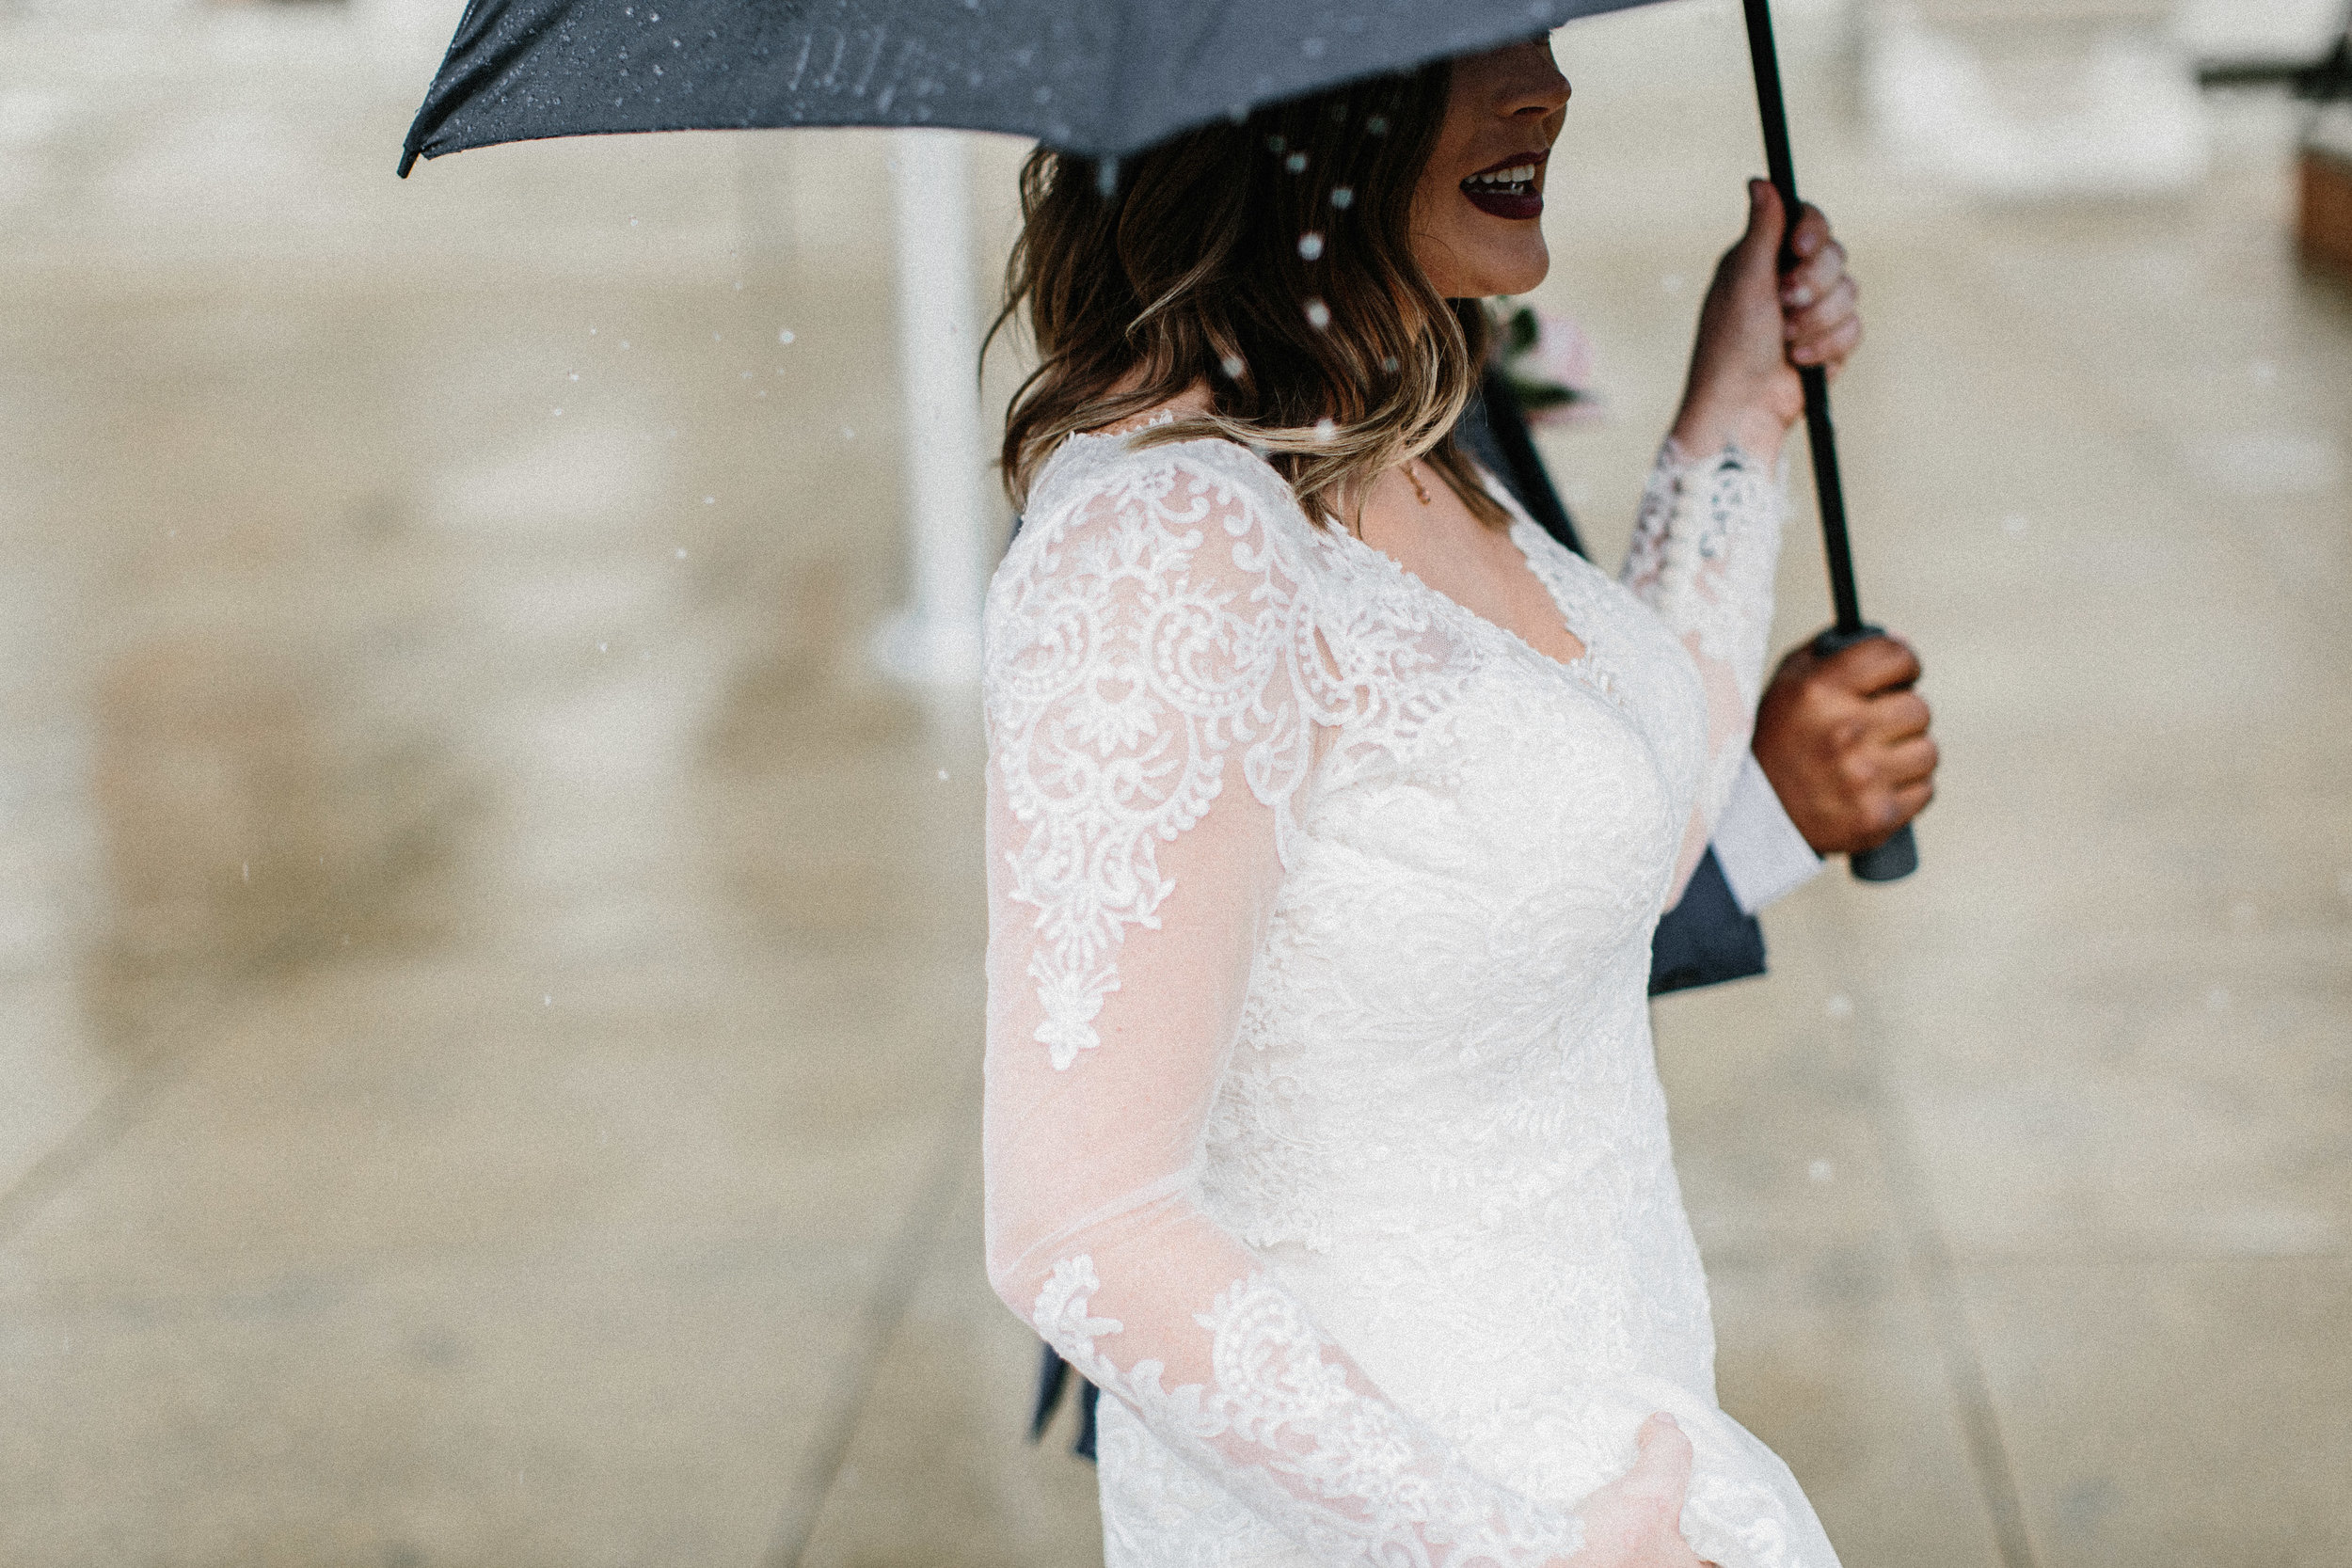 newnan_georgia_elegant_rainy_park_elopement_dogs_pups_tiny_wedding_backless_dress_blue_suit_georgia_atlanta_photographer_1108.jpg